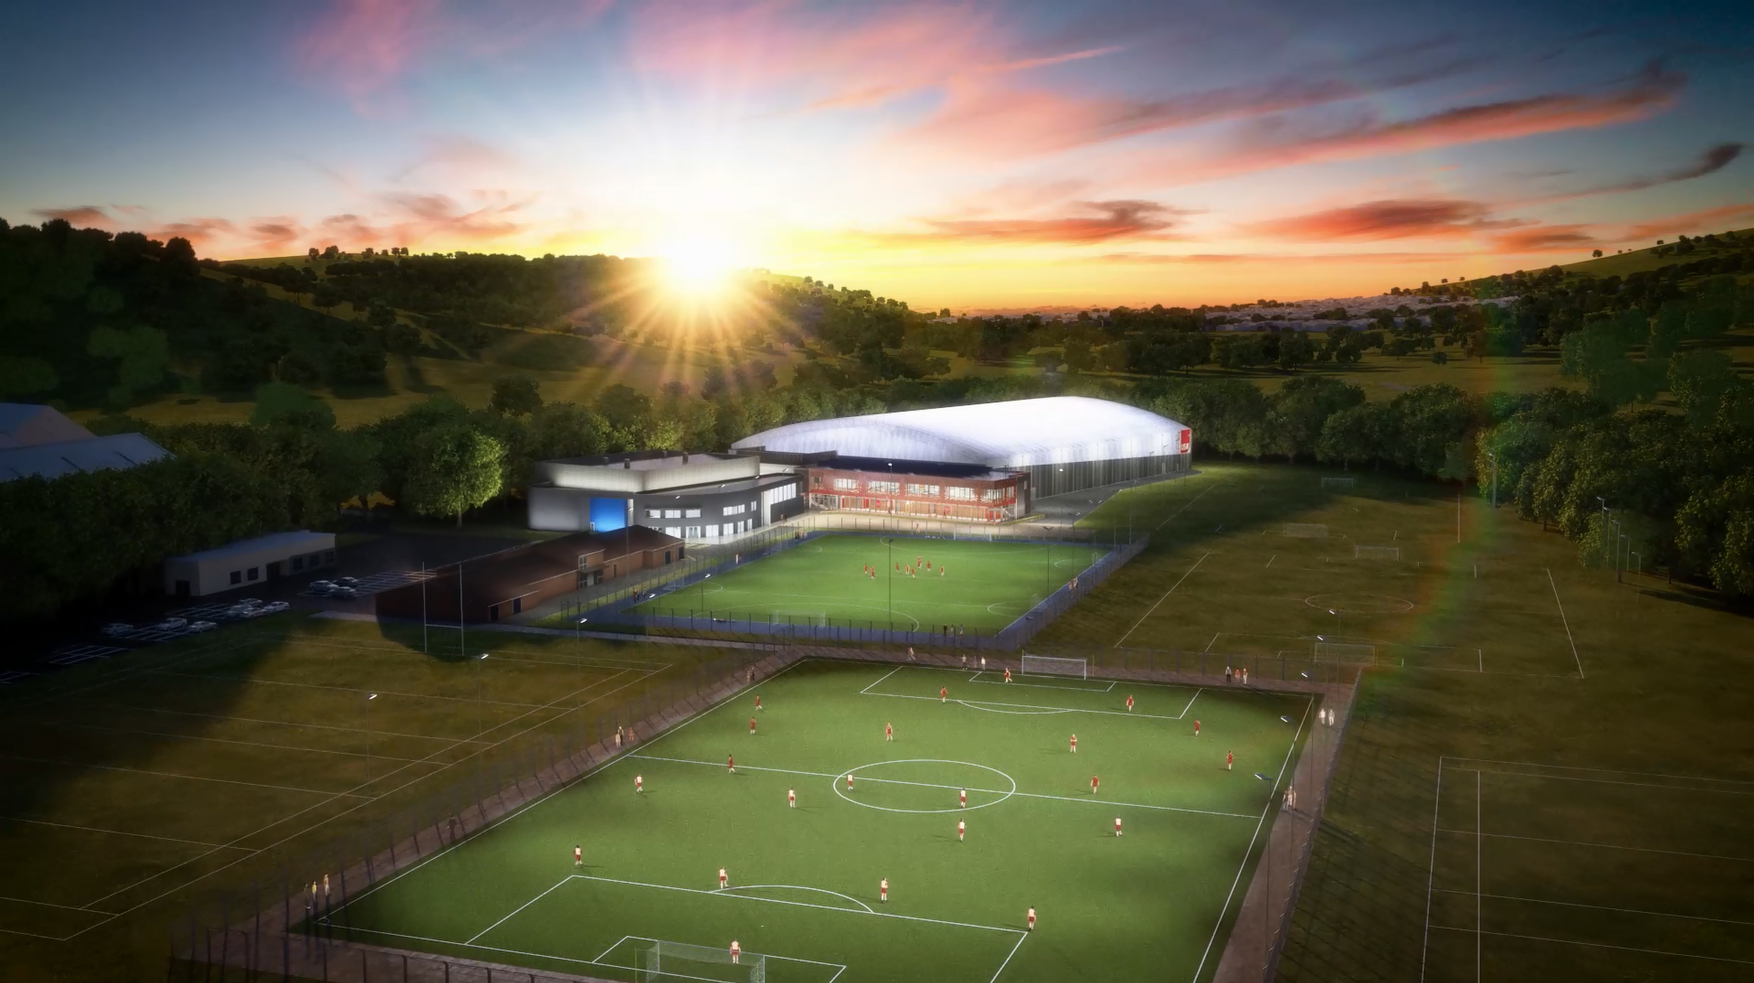 Wales' first indoor 3G football pitch is being built at USW